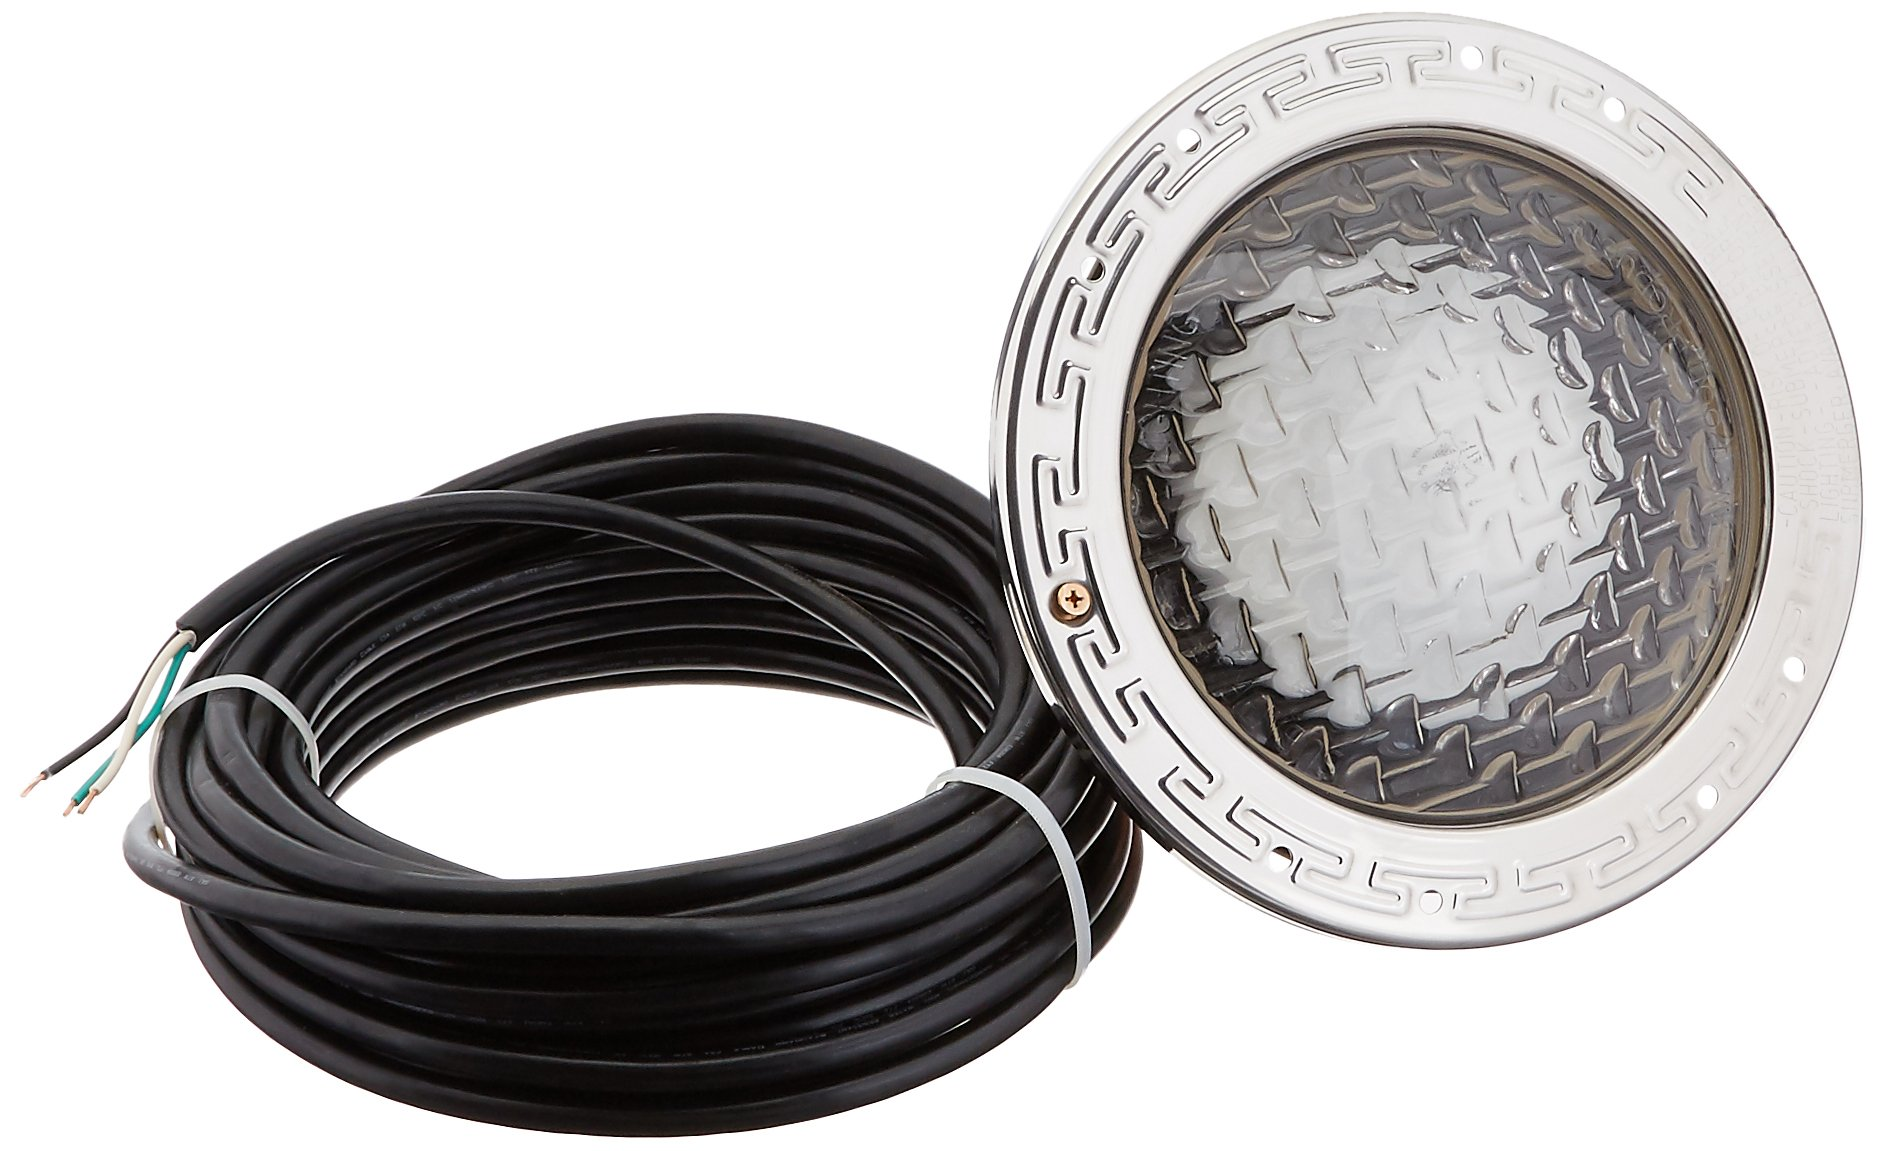 Pentair 78448100 Amerlite Underwater Incandescent Pool Light with Stainless Steel Face Ring, 120 Volt, 50 Foot Cord, 400 Watt by Pentair